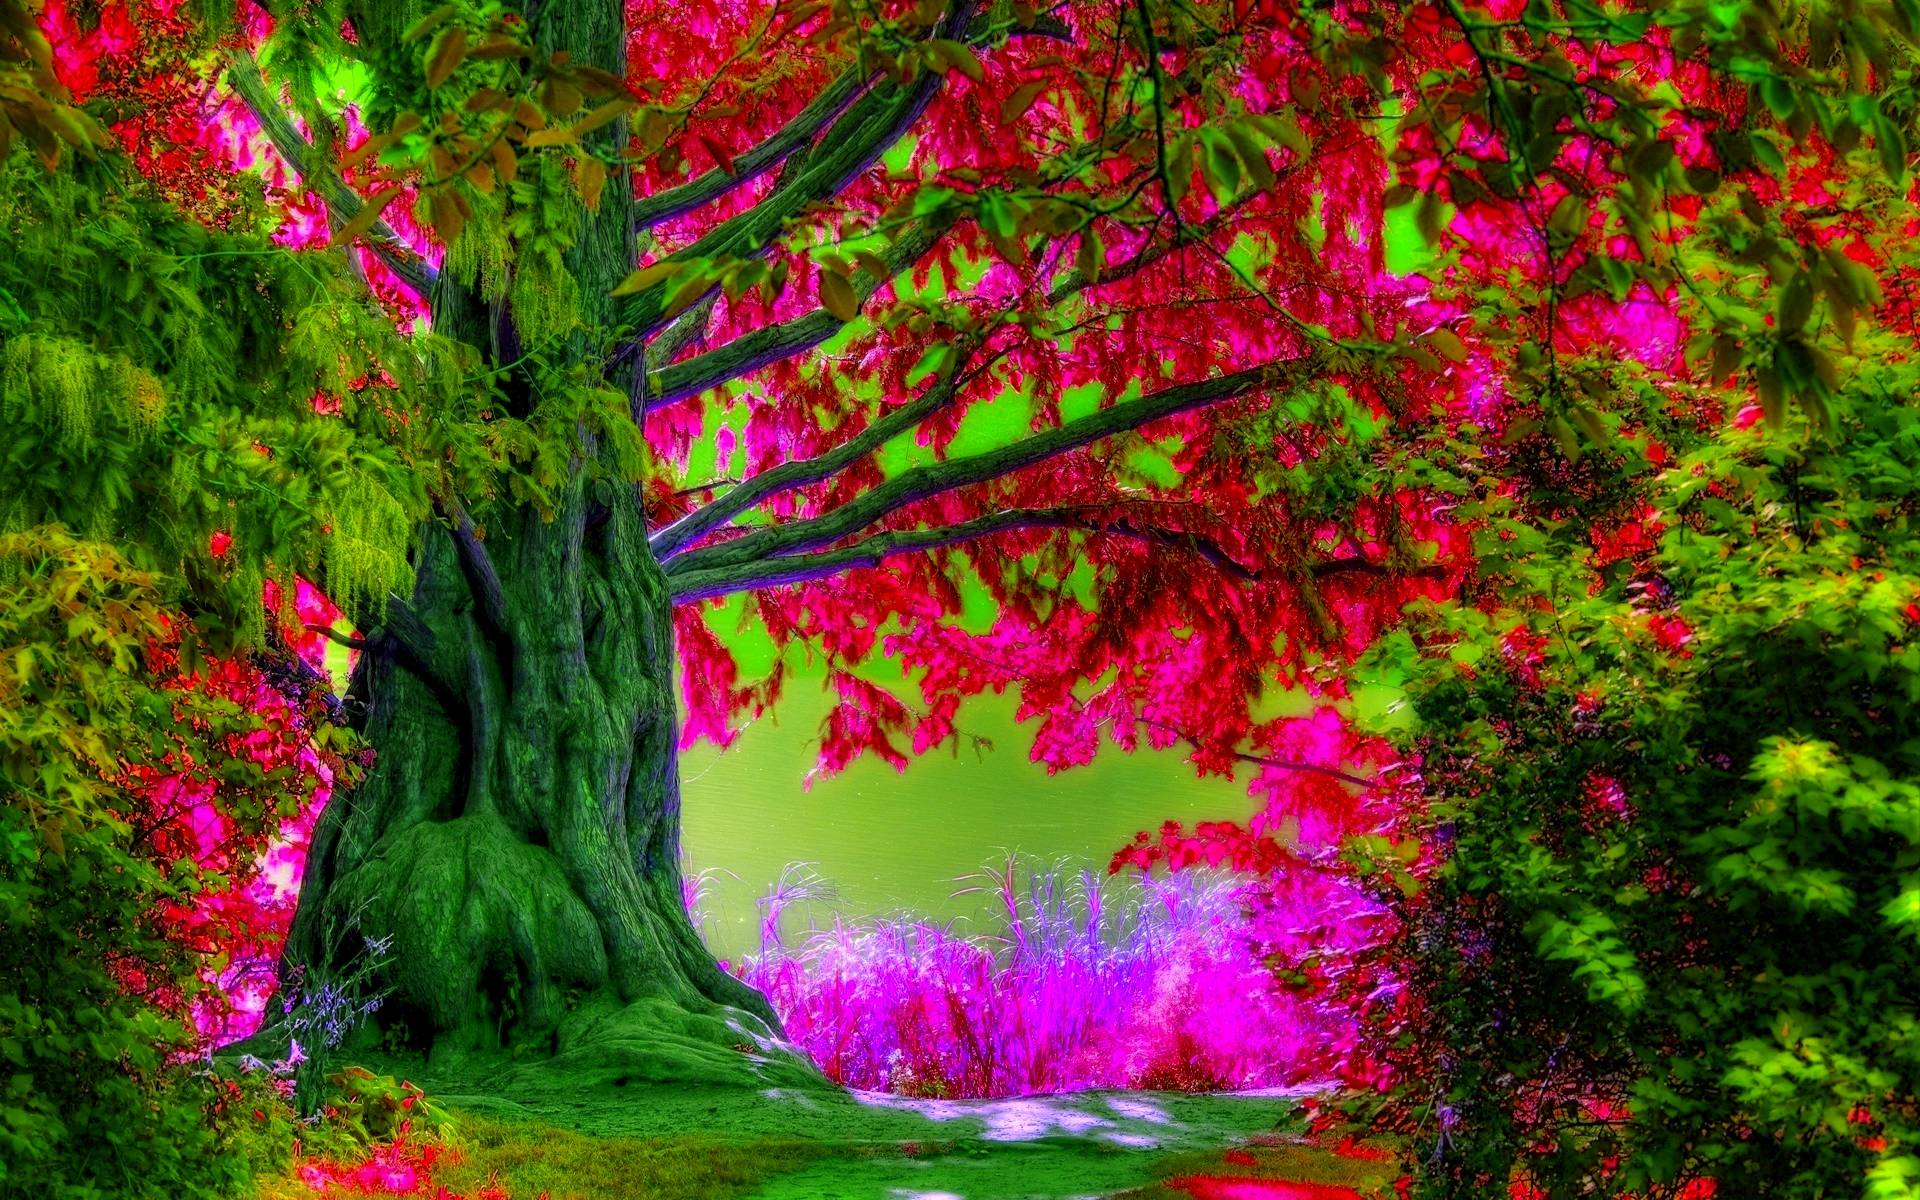 Spring Backgrounds Pictures For Desktop 1920x1200